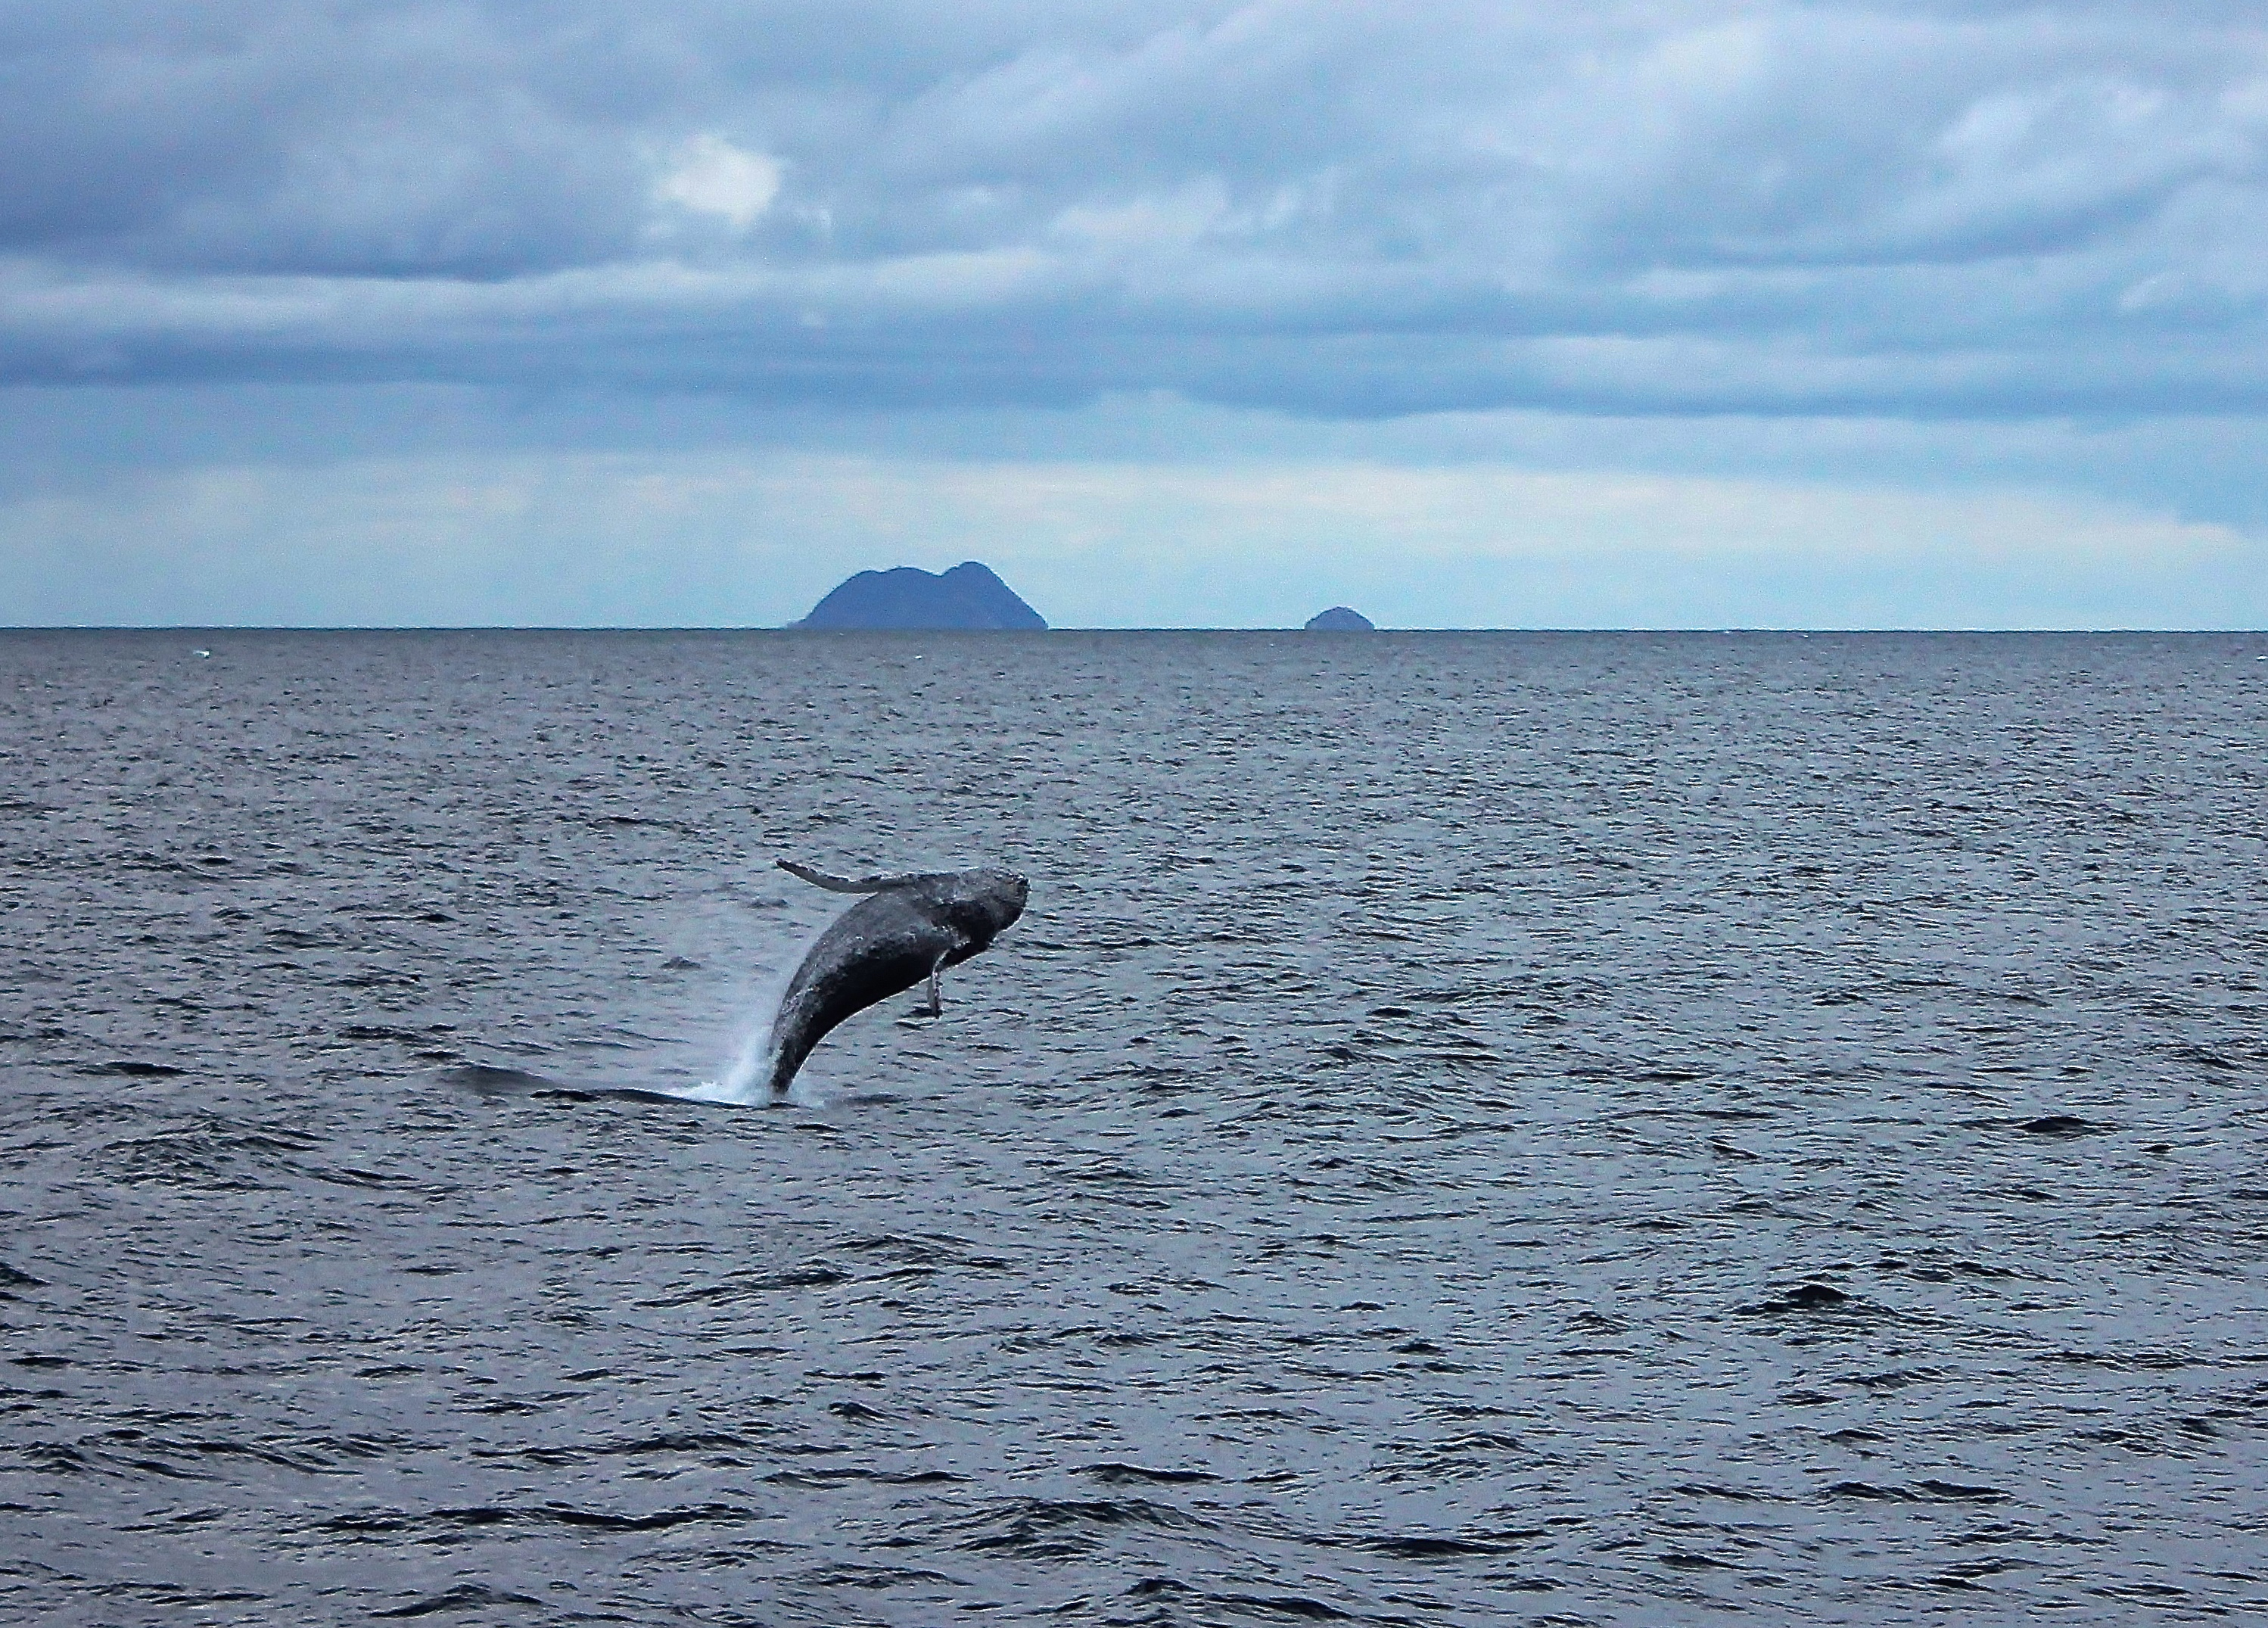 A humpback whale breaches in front of the Coronado Islands on the first day of the 2015/2016 whale watching season.